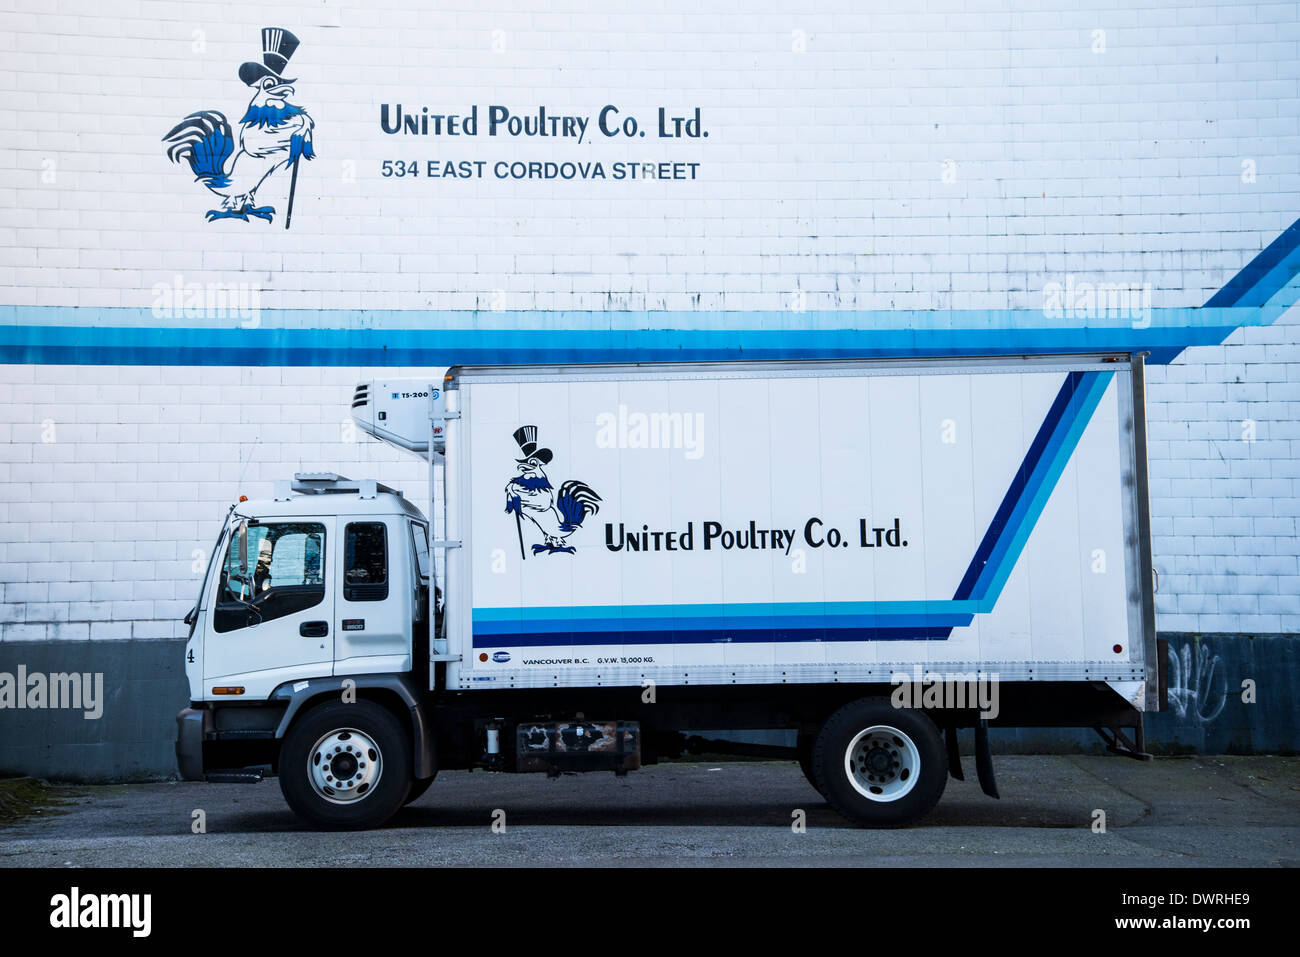 United Poultry truck, Vancouver, British Columbia, Canada - Stock Image